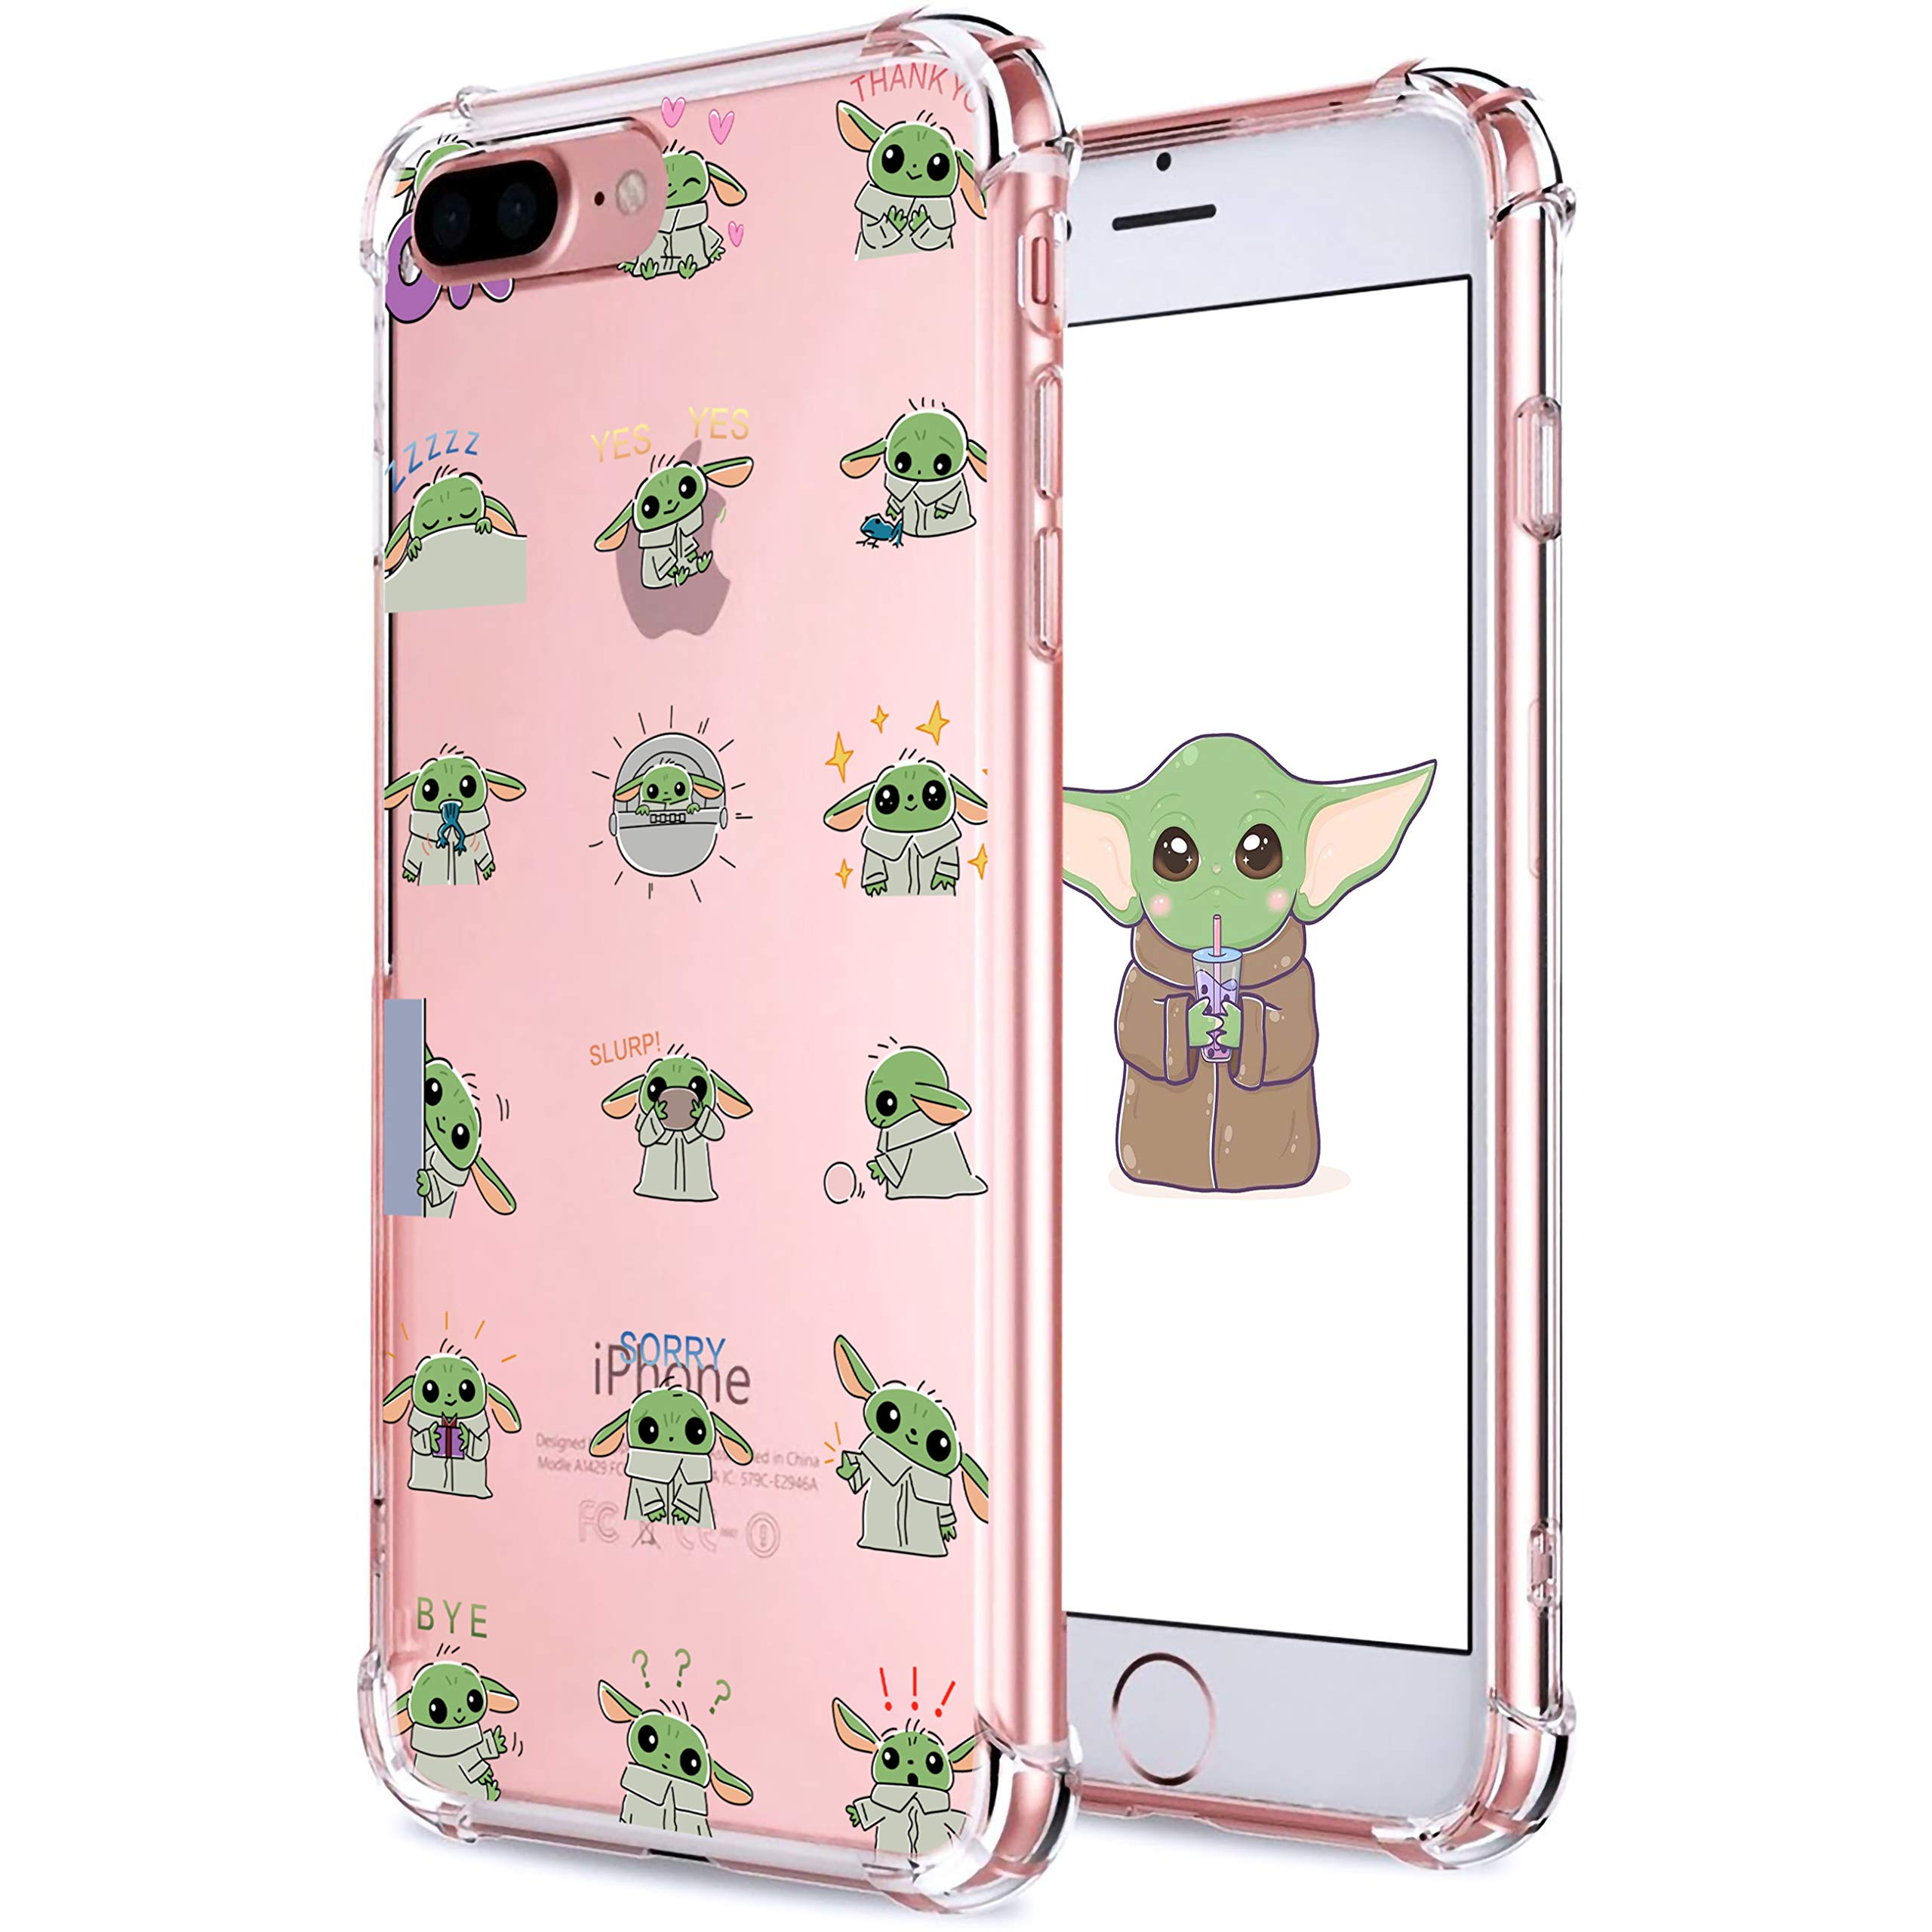 """oqpa for iPhone 7 Plus/8 Plus Case Cartoon Character Funny Cute Fun TPU Design Cover for Girls Women Teen, Fashion Cool Unique Aesthetic Clear Cases Small Yuda Baby (for iPhone 7 Plus/8 Plus 5.5"""")"""